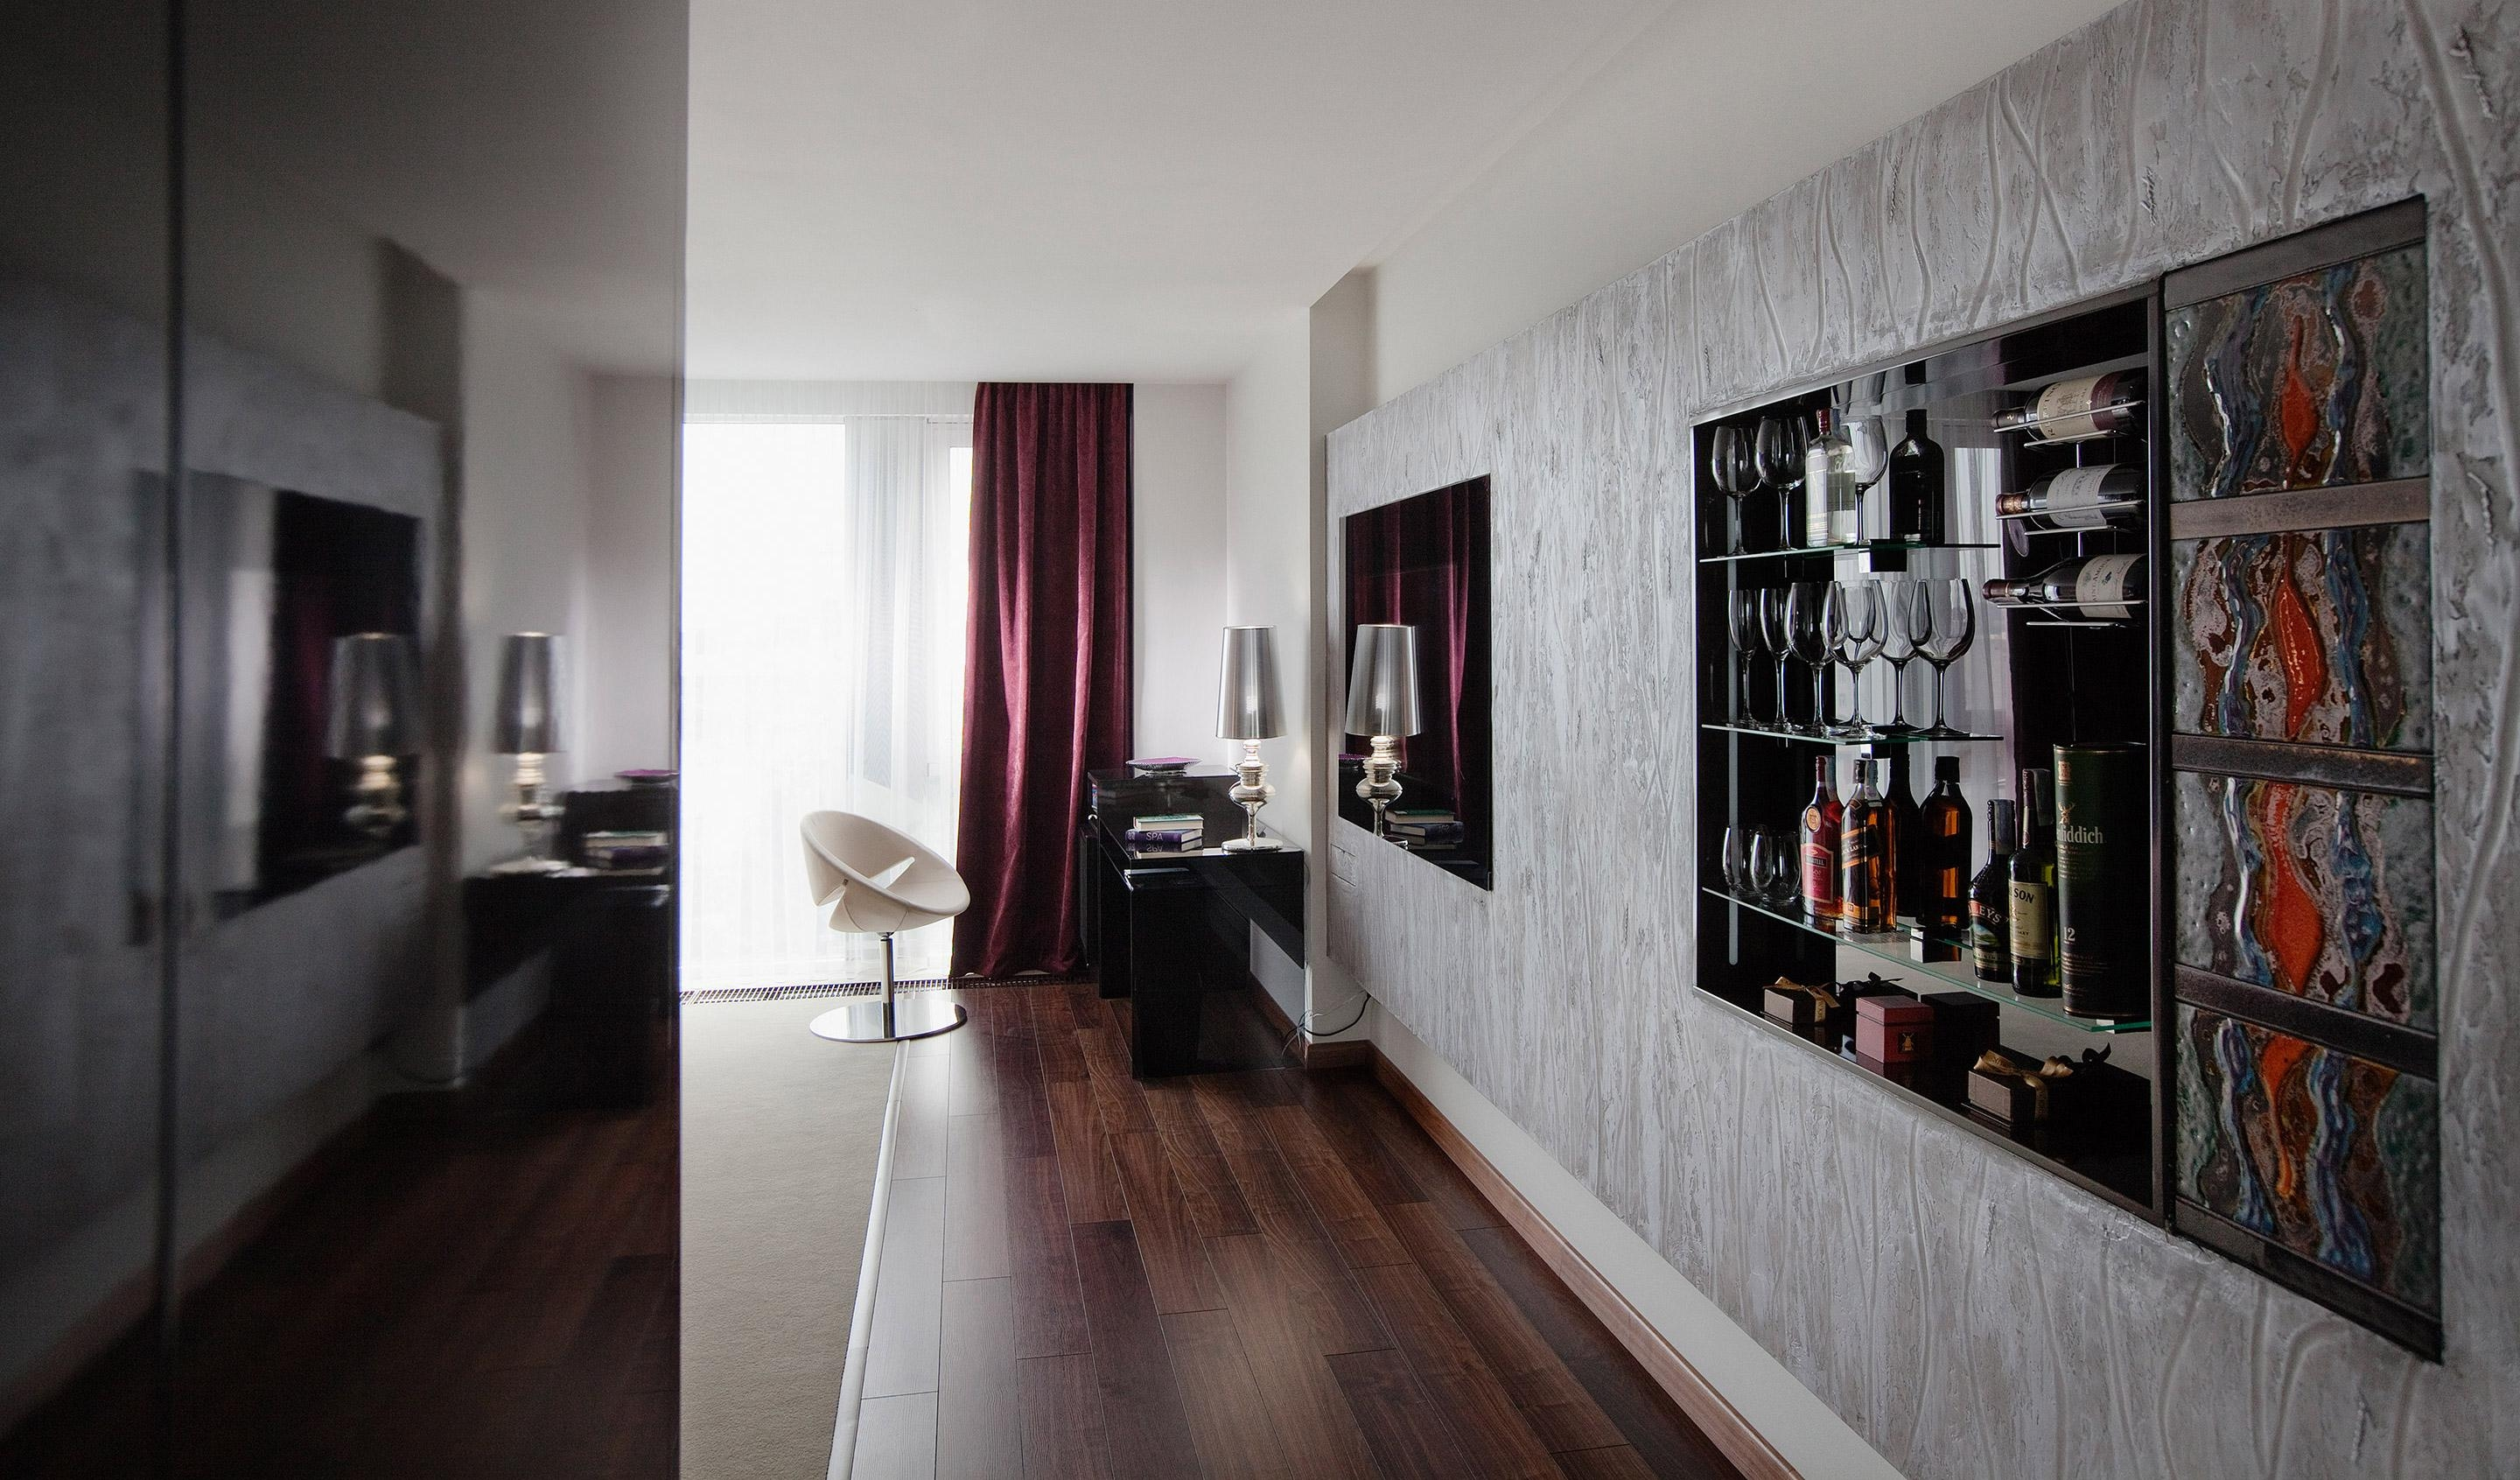 11 Mirrors (Kiev, Ukraine) | Design Hotels™ Intended For Hotel Mirrors (View 16 of 20)